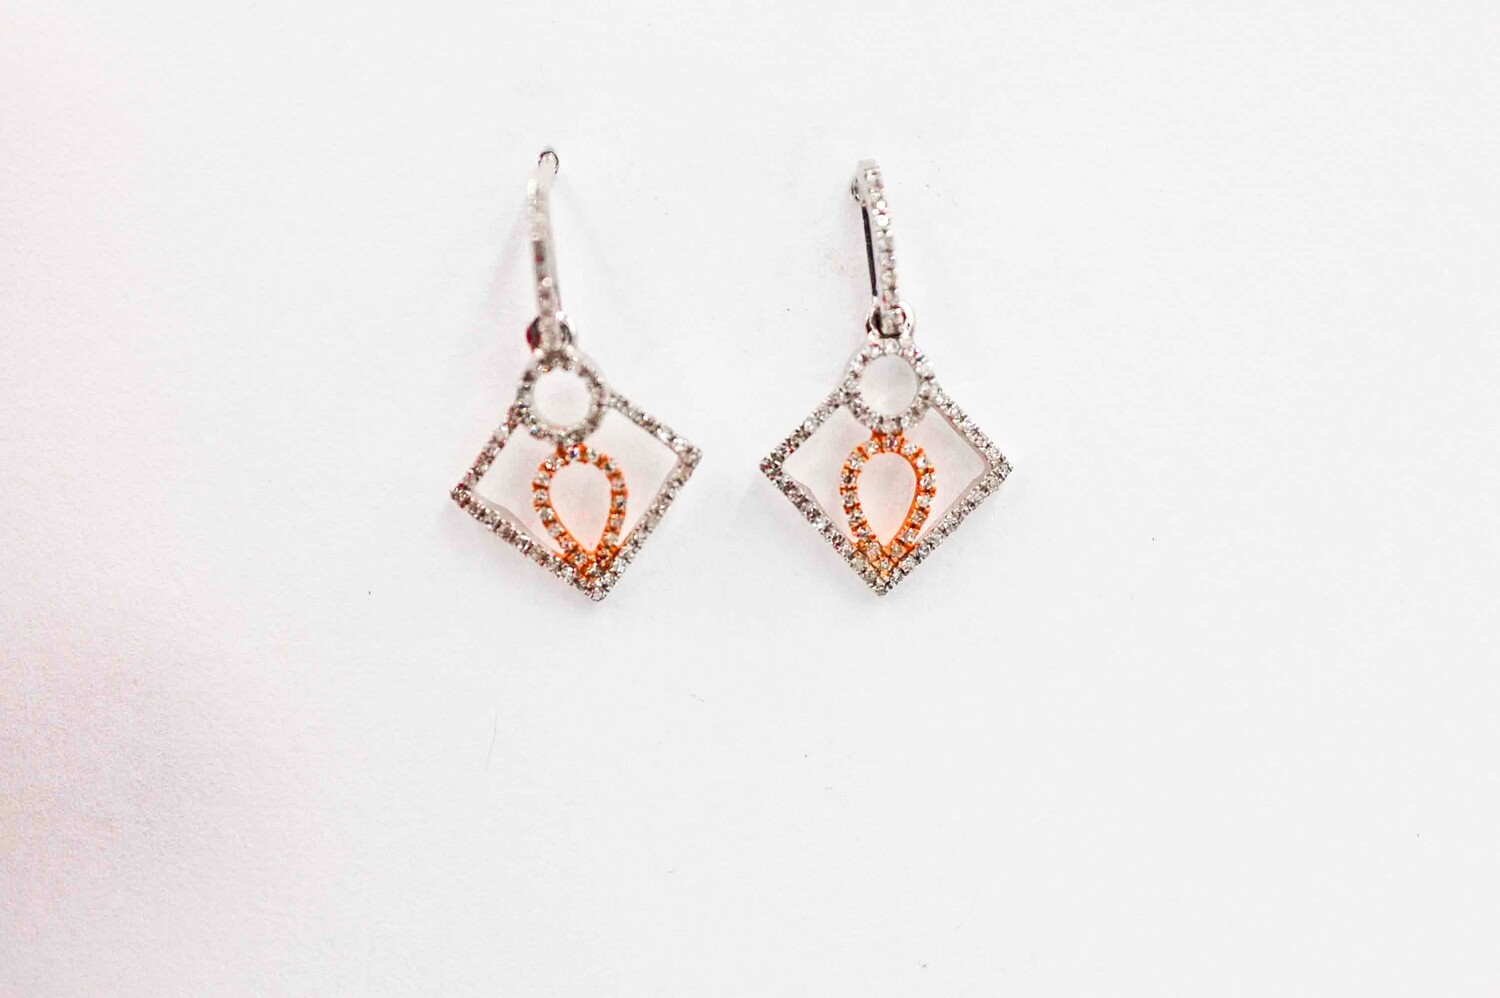 14k rose/wg .19cttw diamond drop earrings